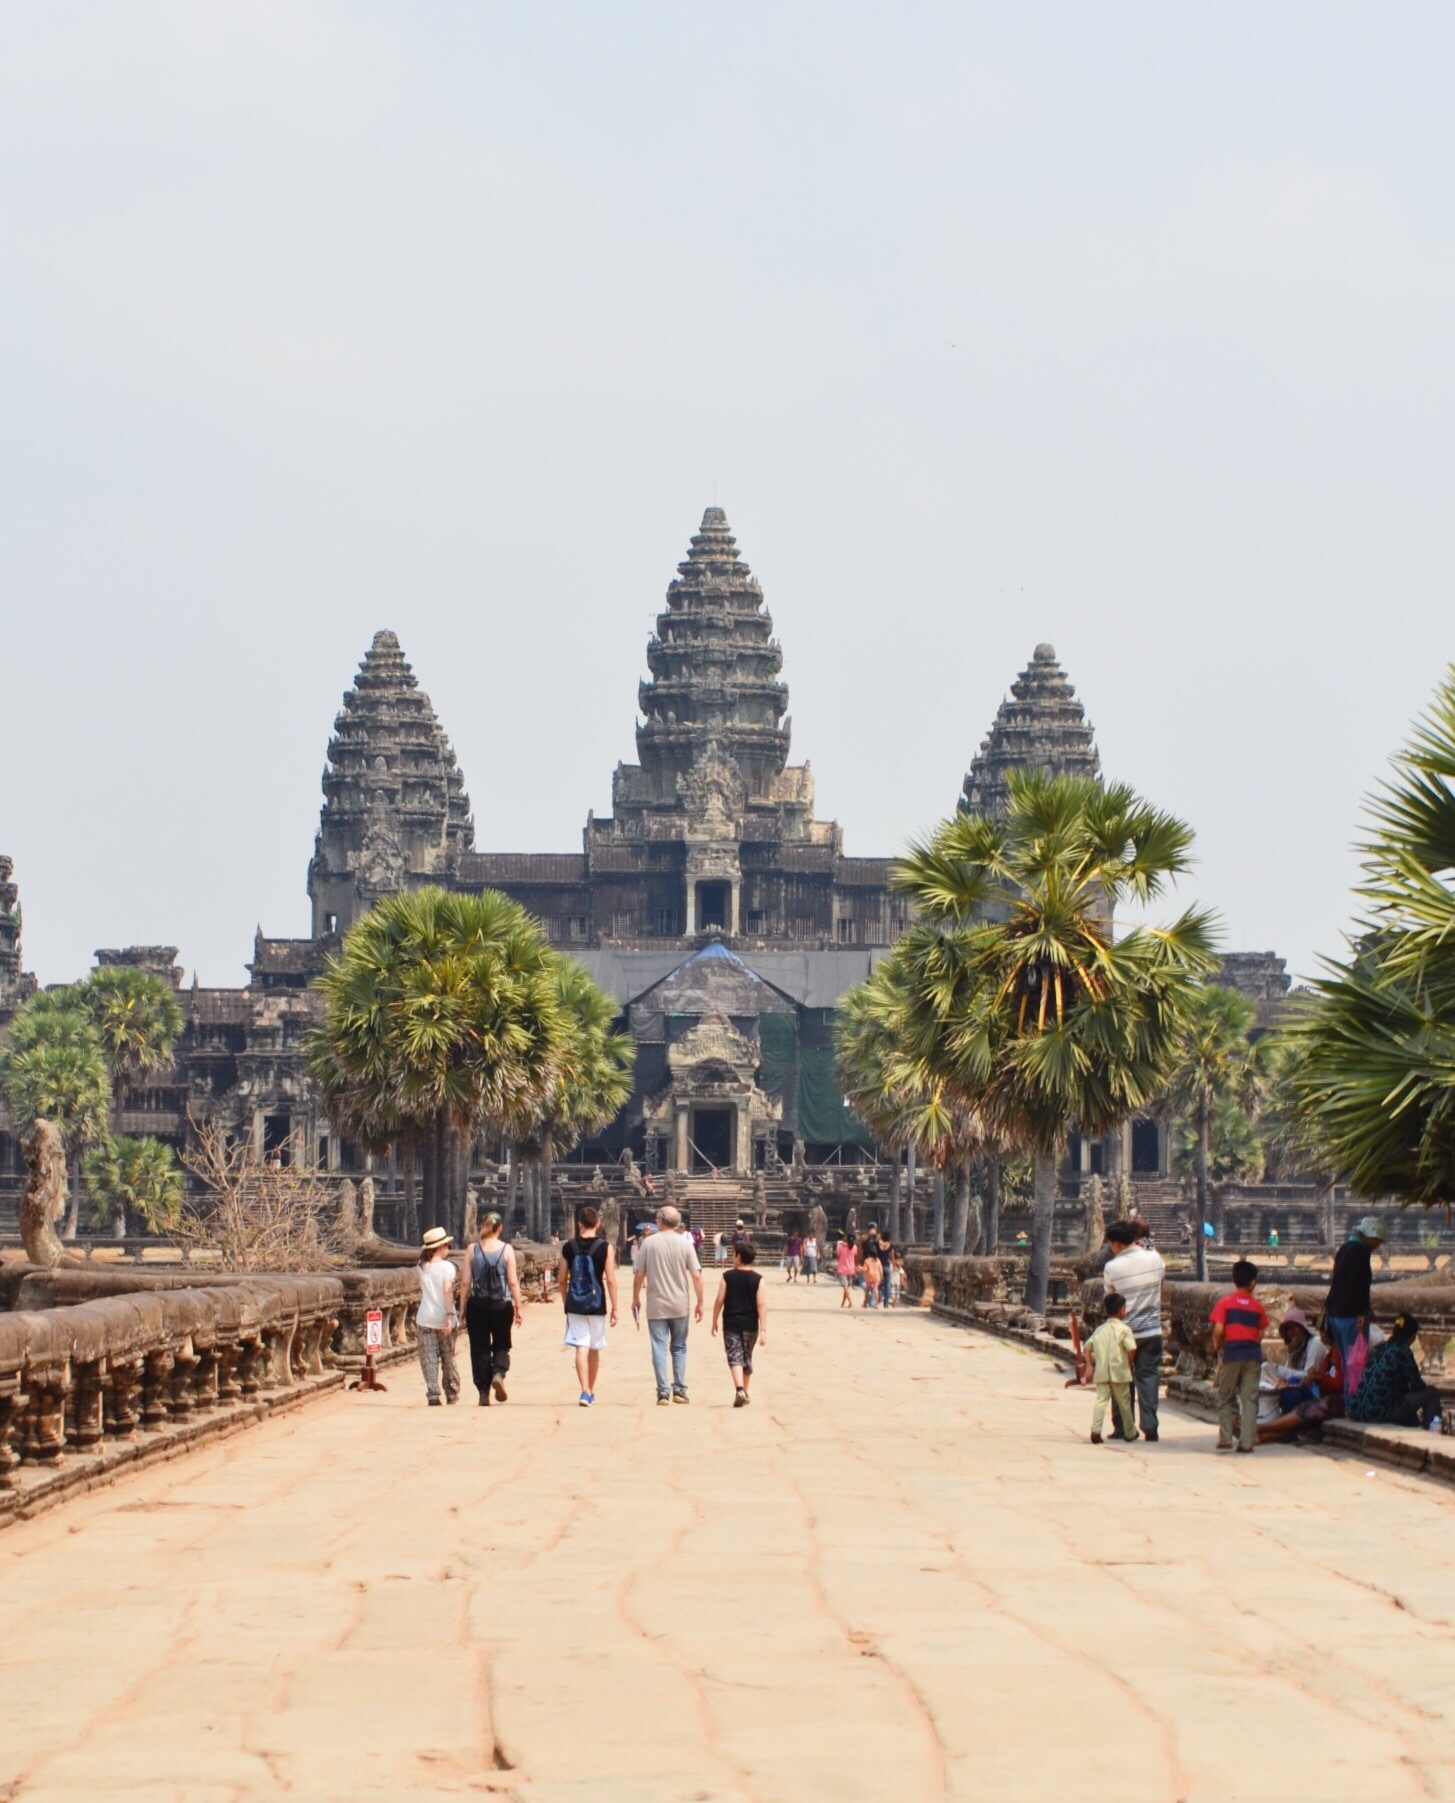 Image of Angkor Wat from Ulimate travelist